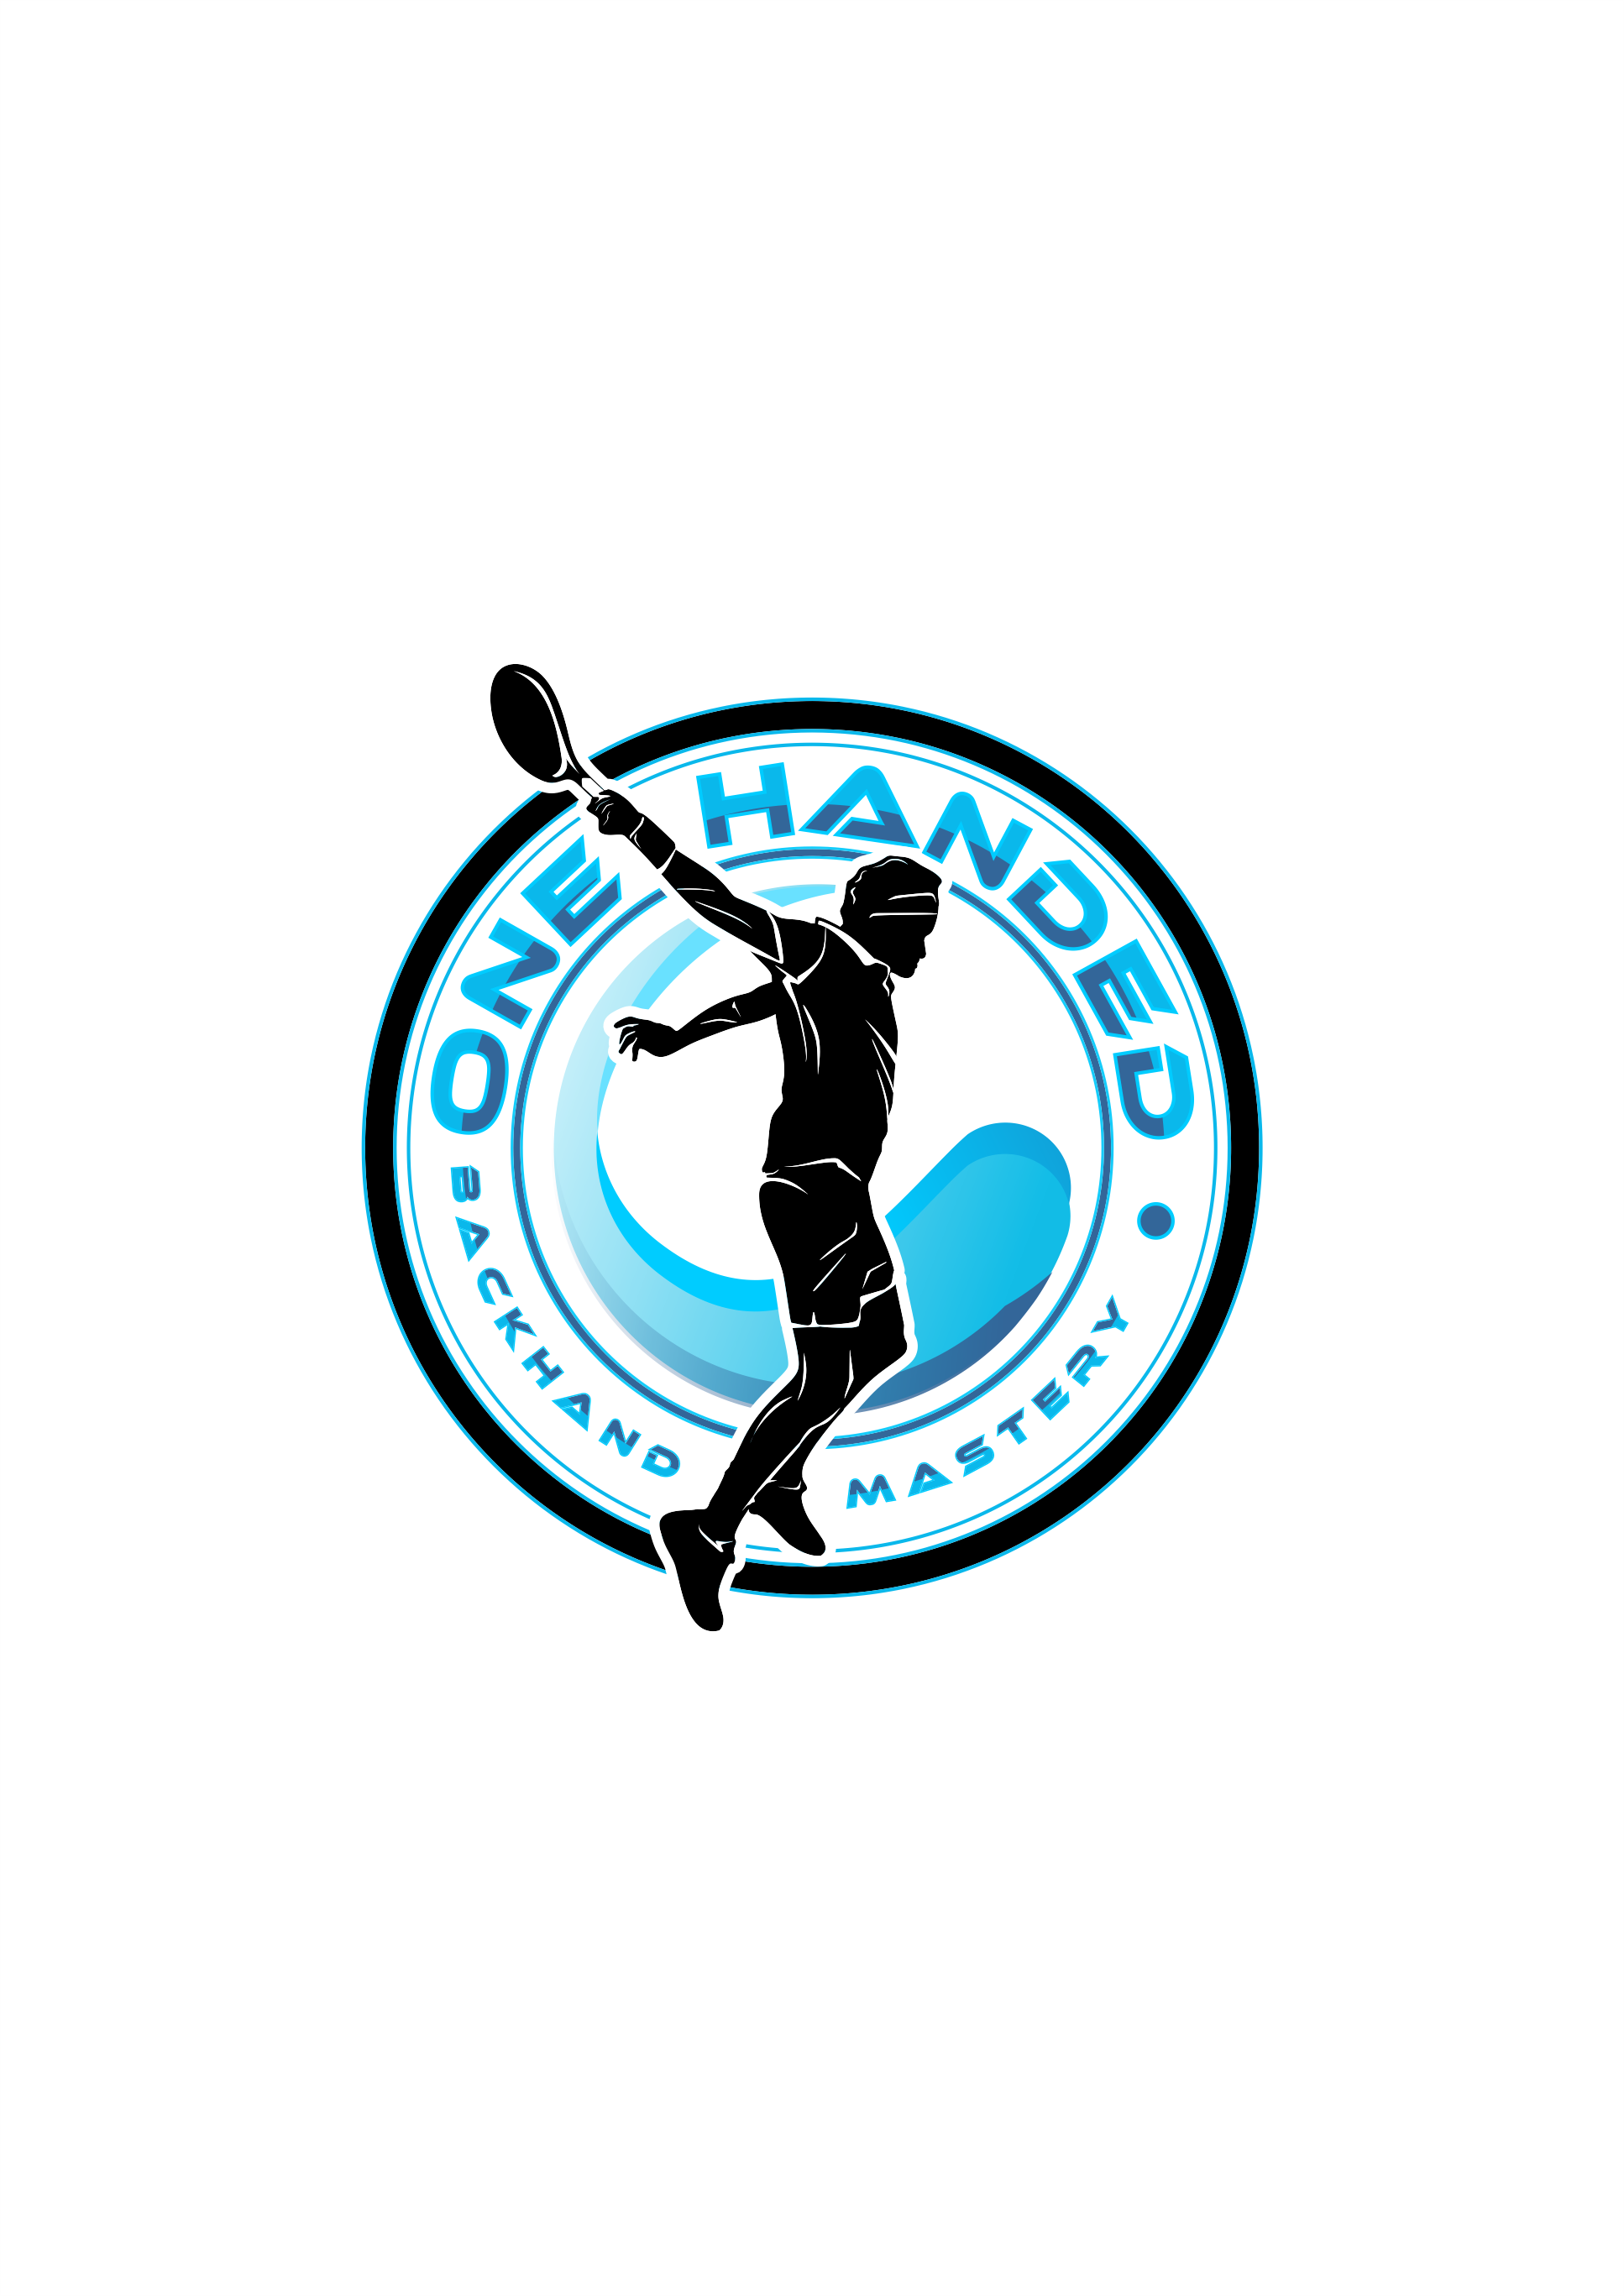 Clean, dynamic logo needed for my tennis course!